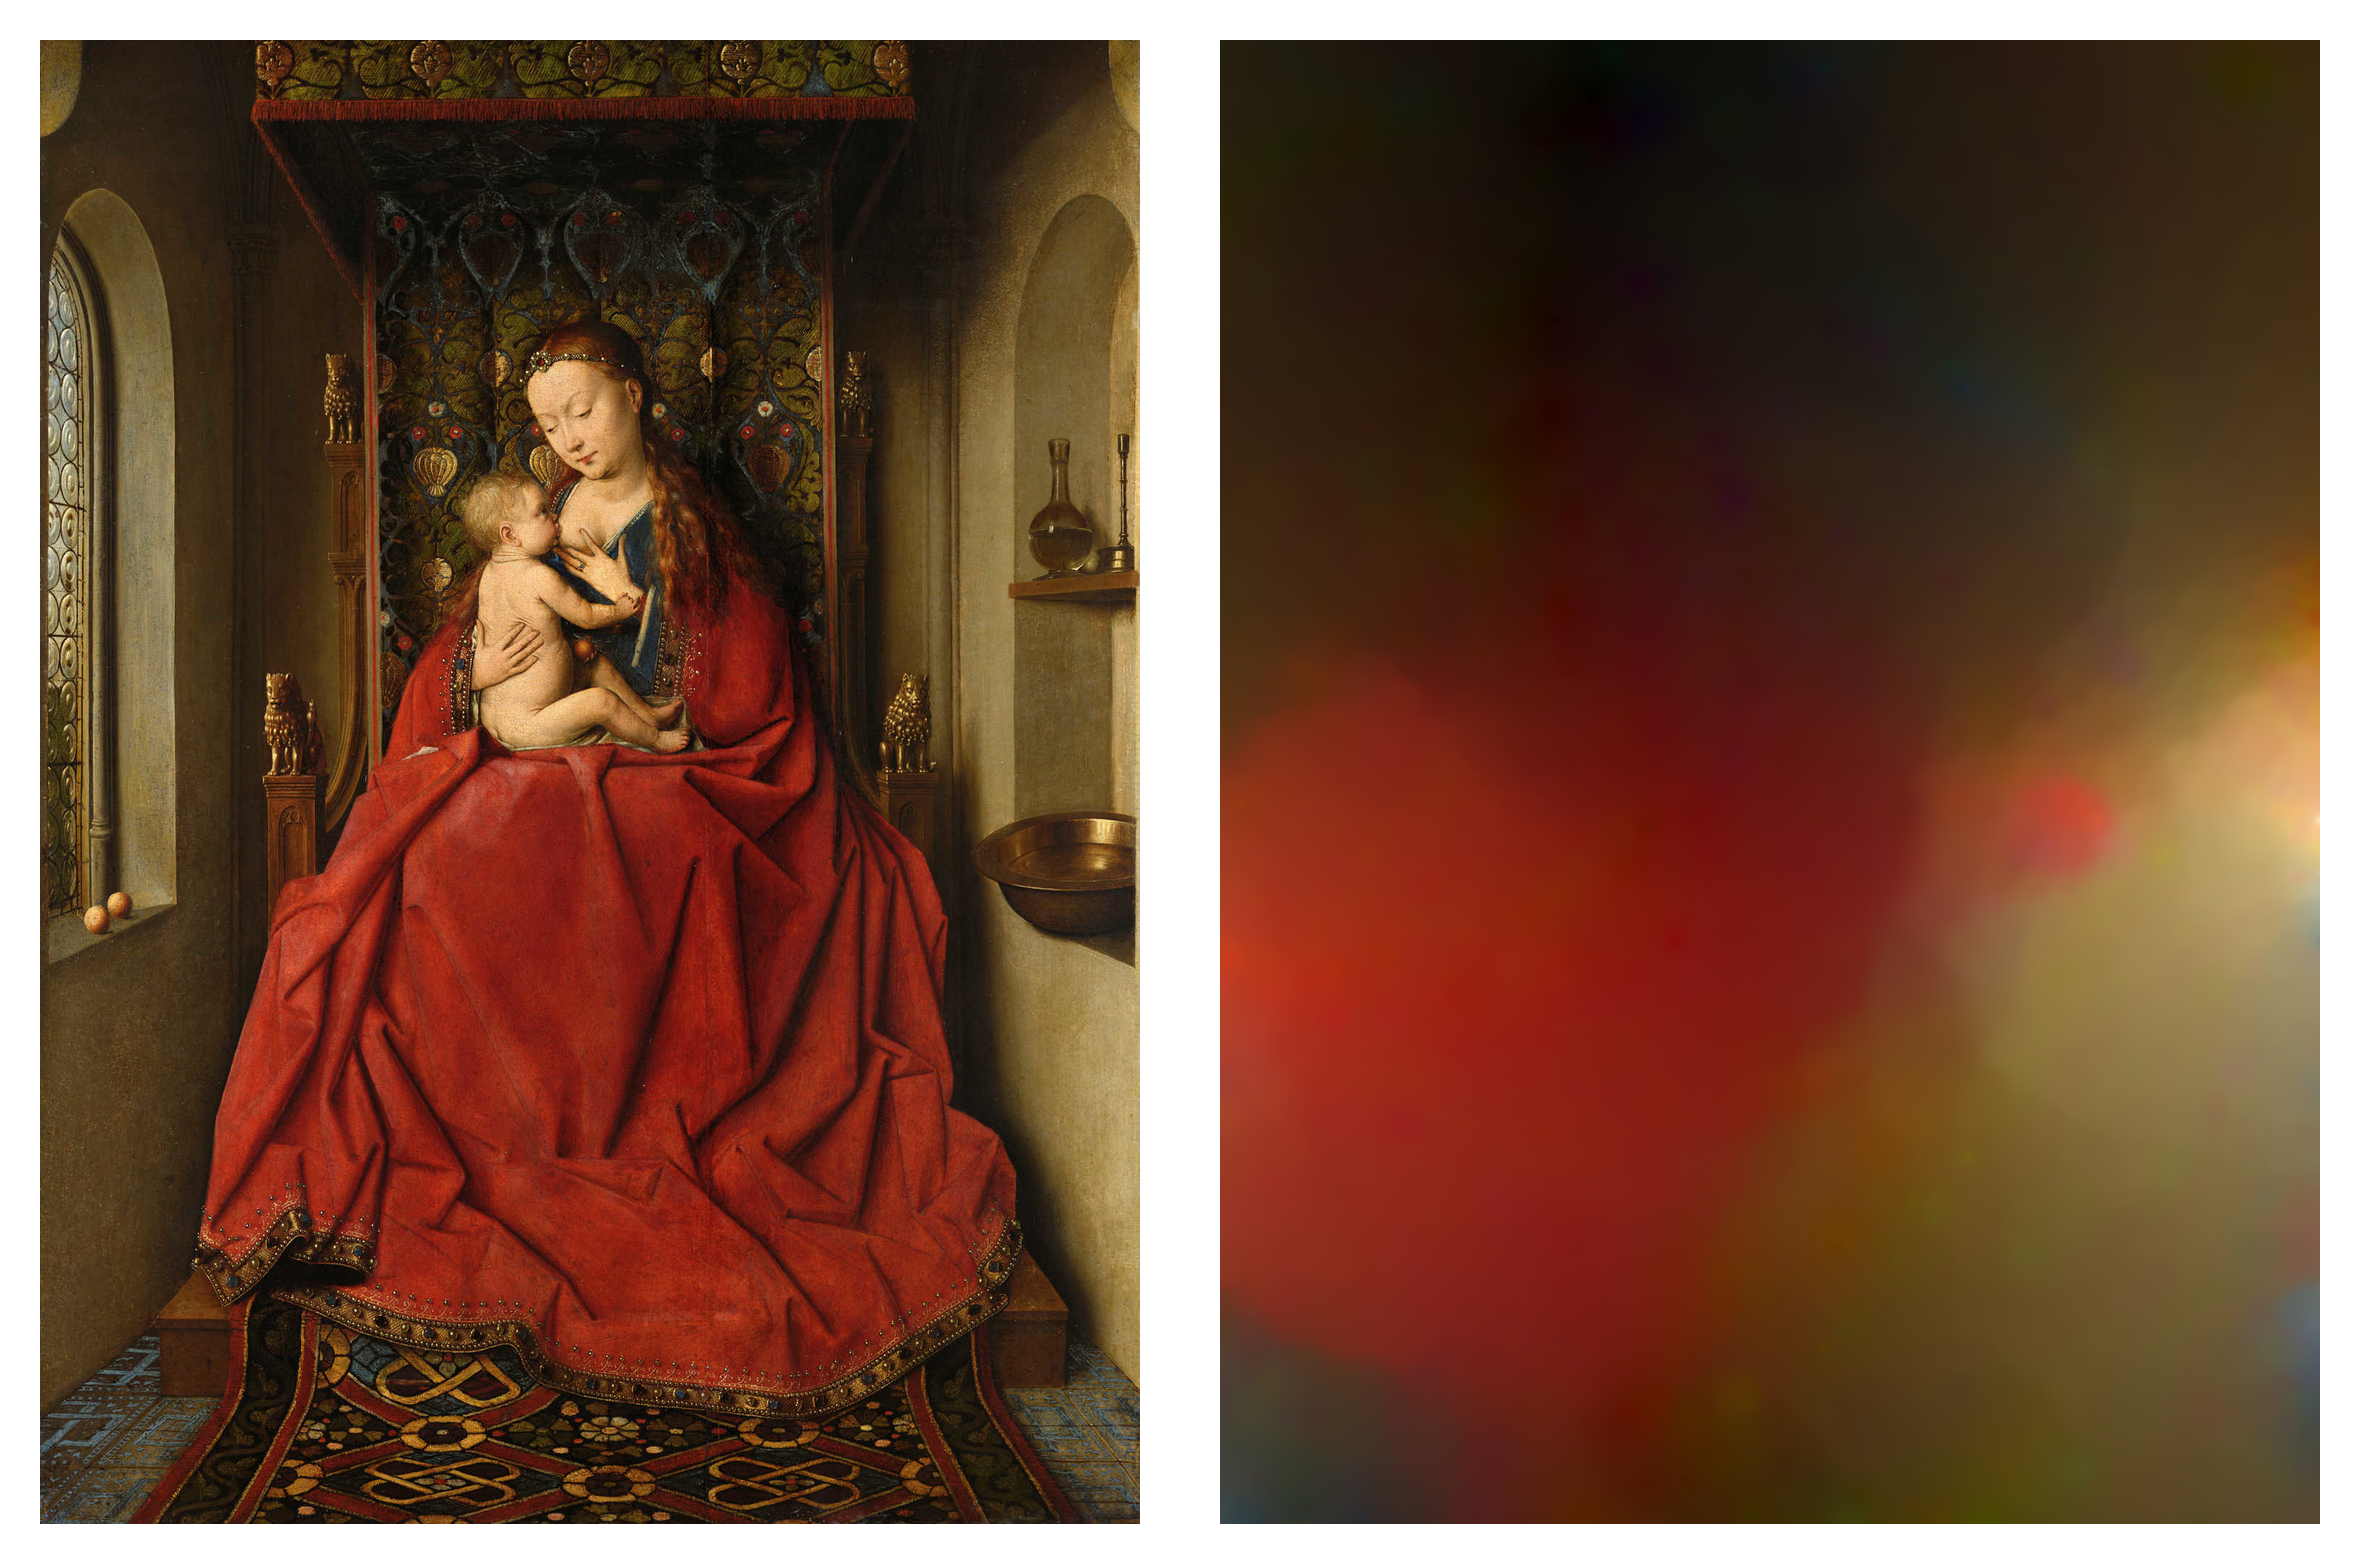 Lucca Madonna.  (left) Jan van Eyck (1436).  Machines of the Present Consume the Imaginations of the Past,  (right) work in progress (2016). Image courtesy of the artist.